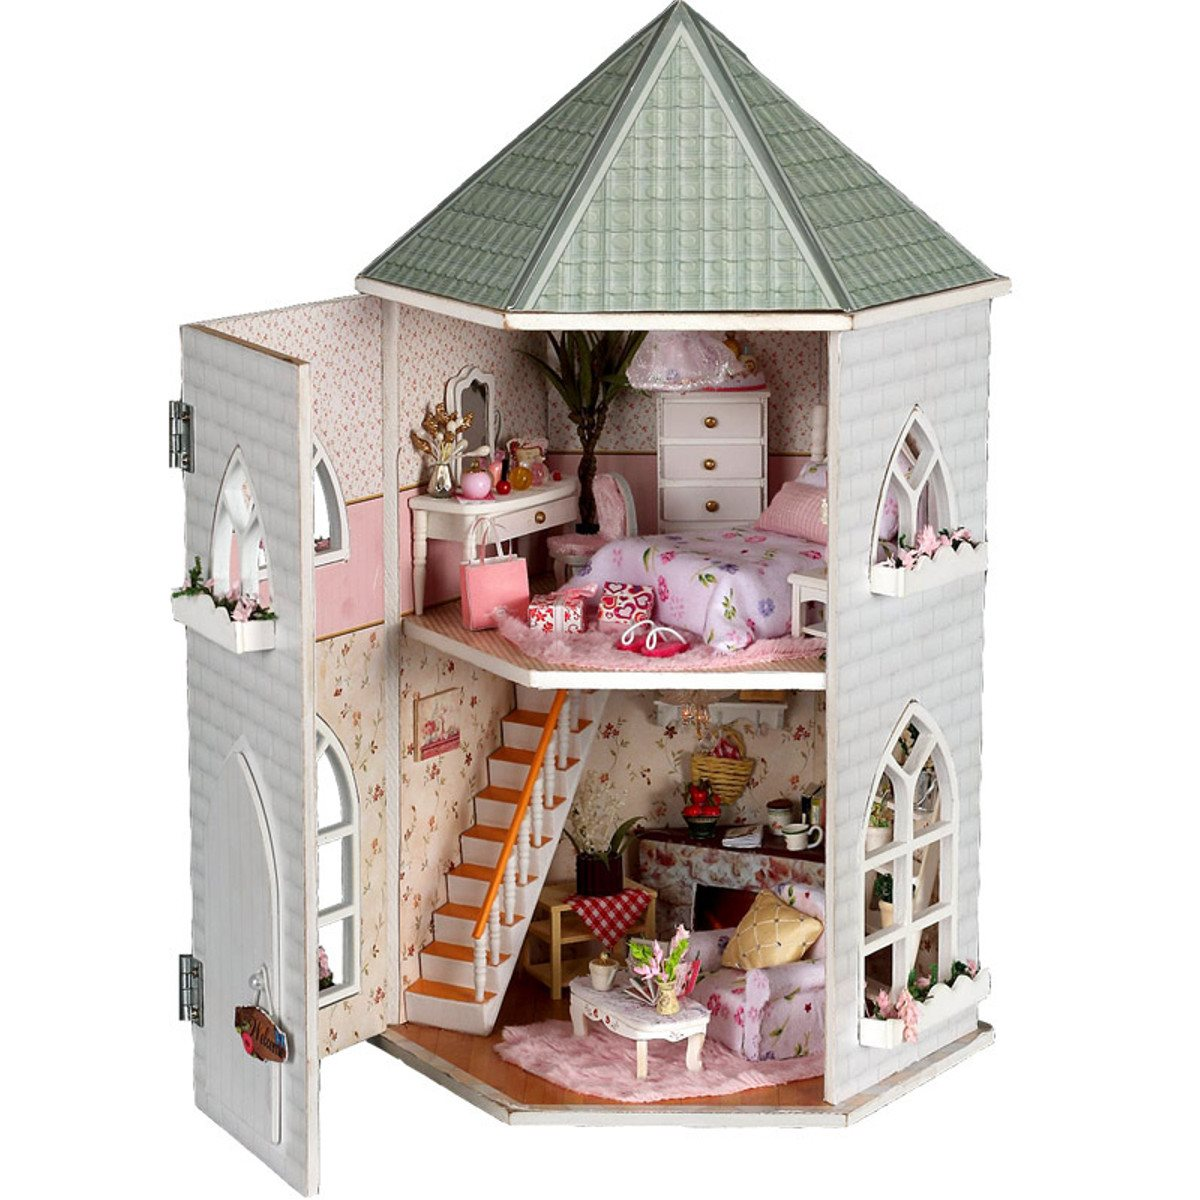 Love Castle DIY Wooden Dollhouse Miniature With Light And Furniture Kits Toy Gift Best Chirsmas Birthday